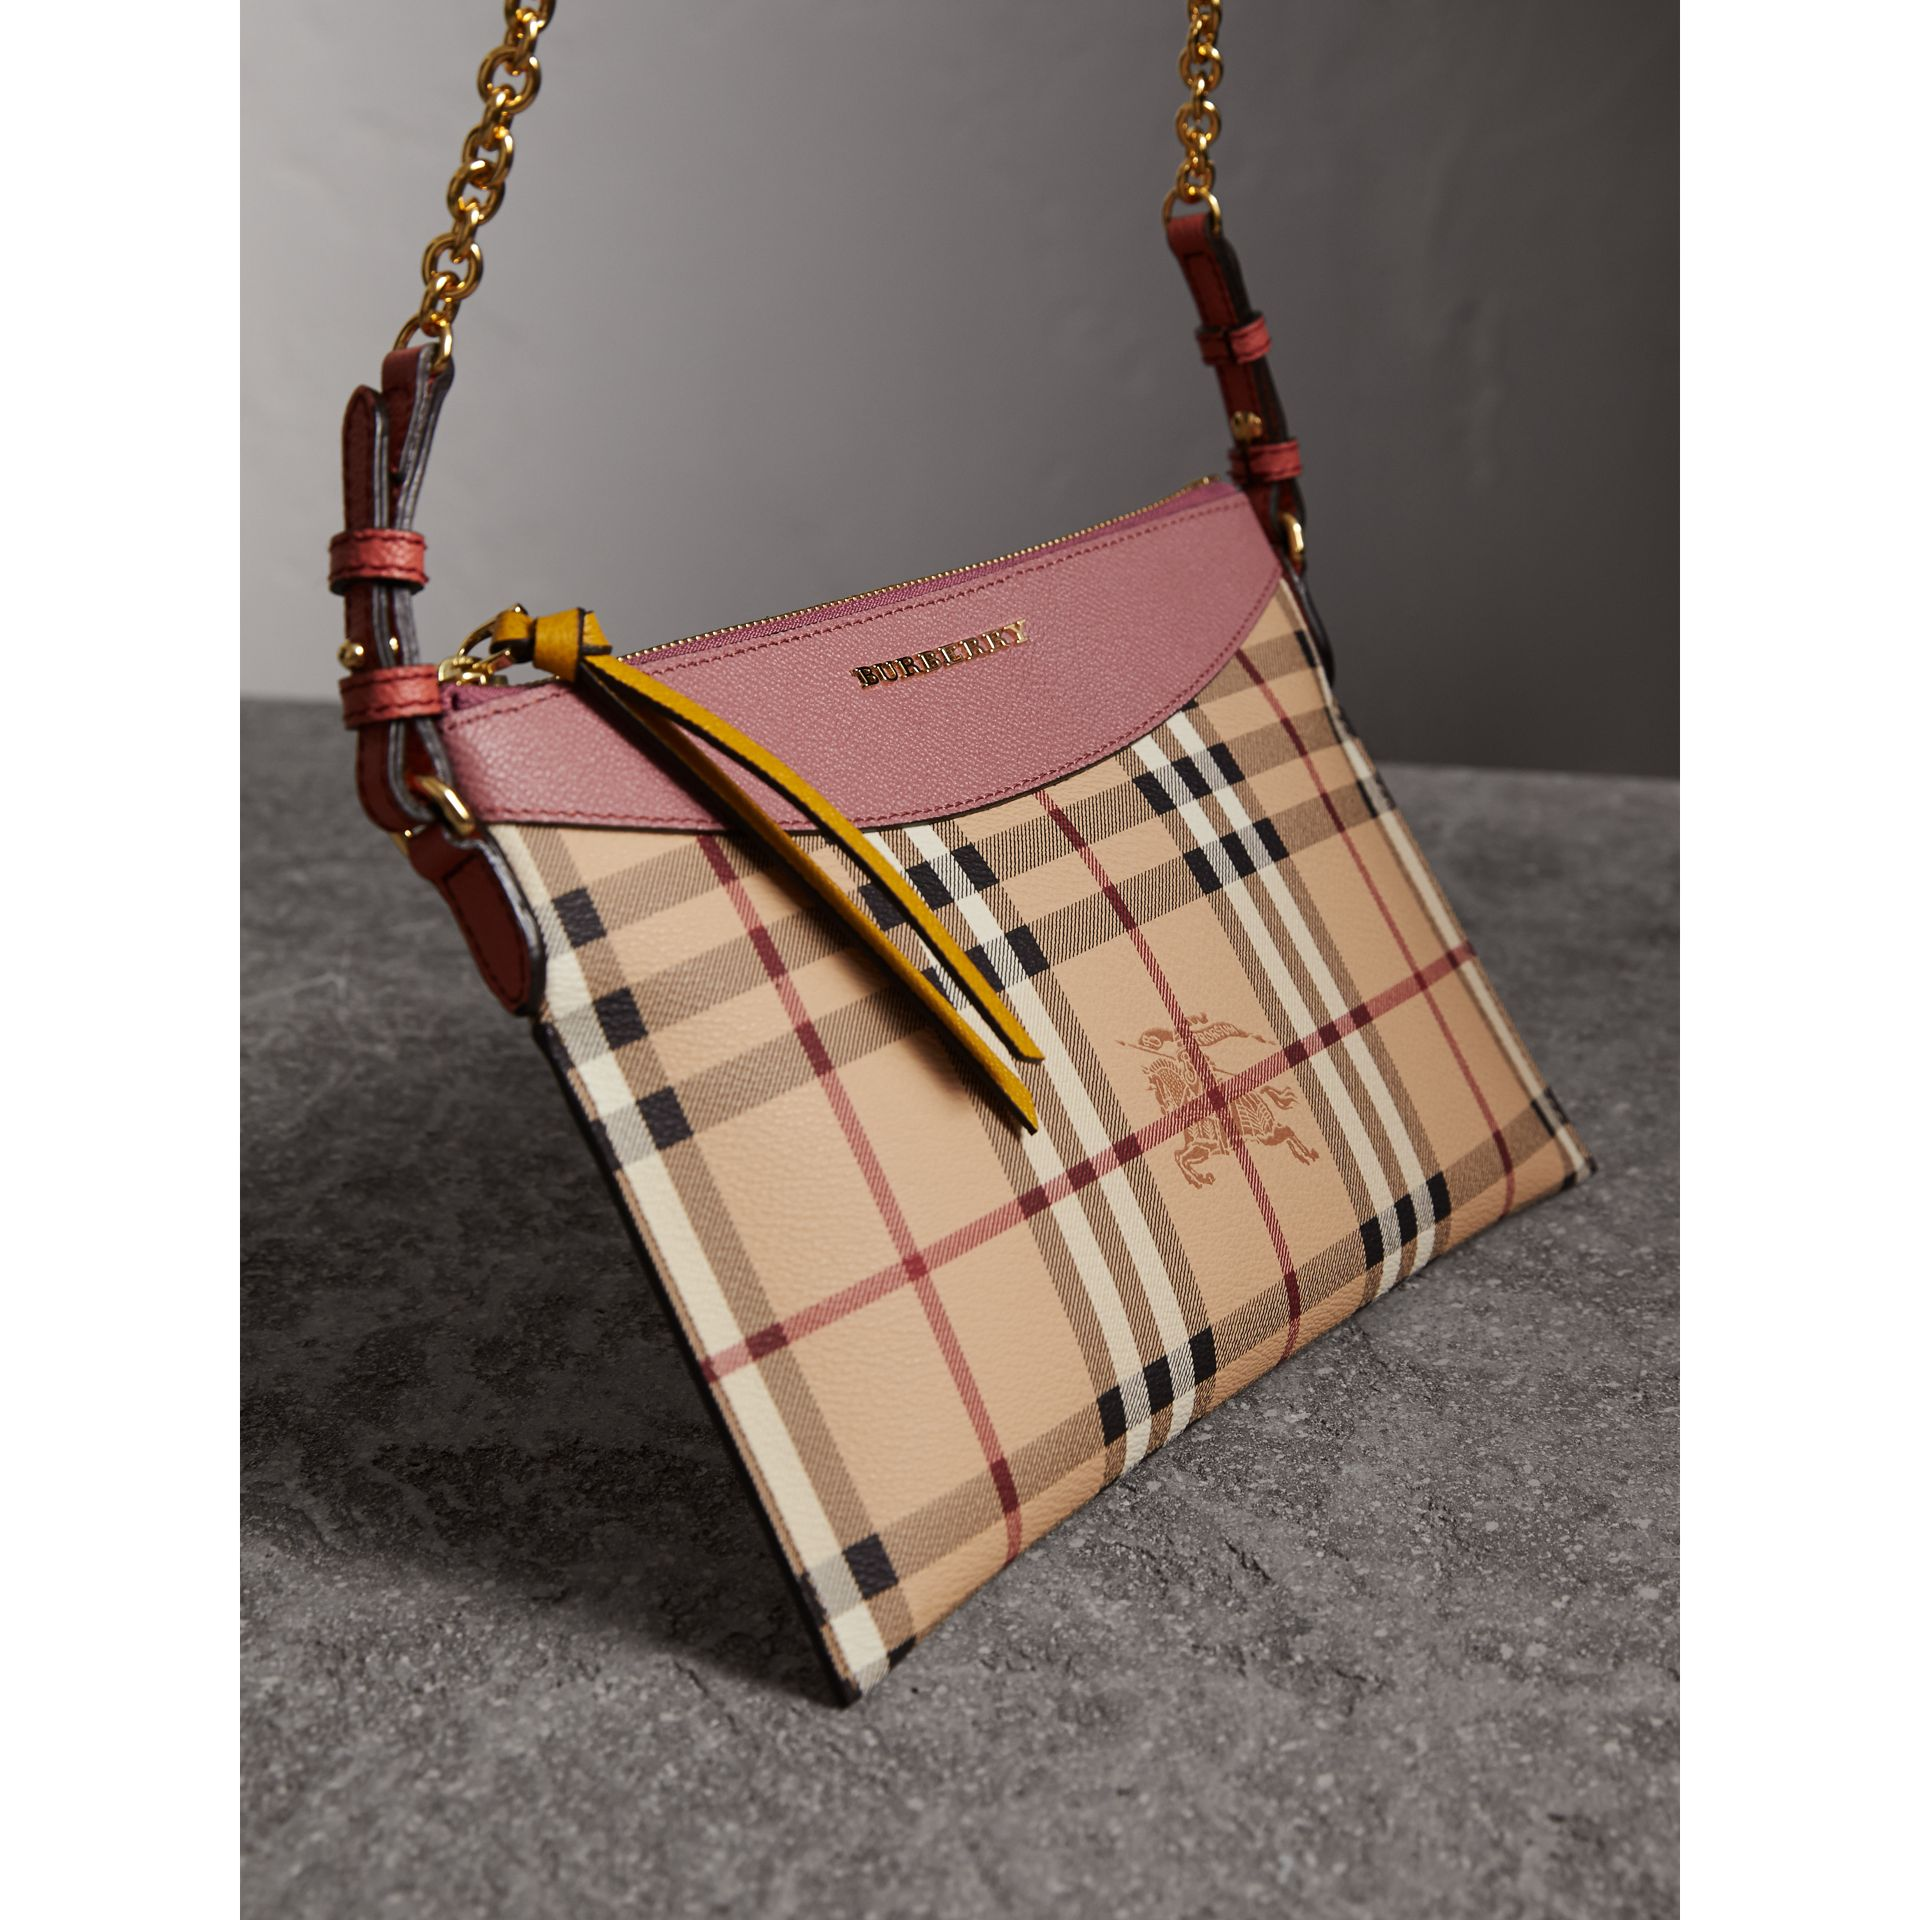 Haymarket Check and Two-tone Leather Clutch Bag in Dusty Pink/multicolour - Women | Burberry - gallery image 6